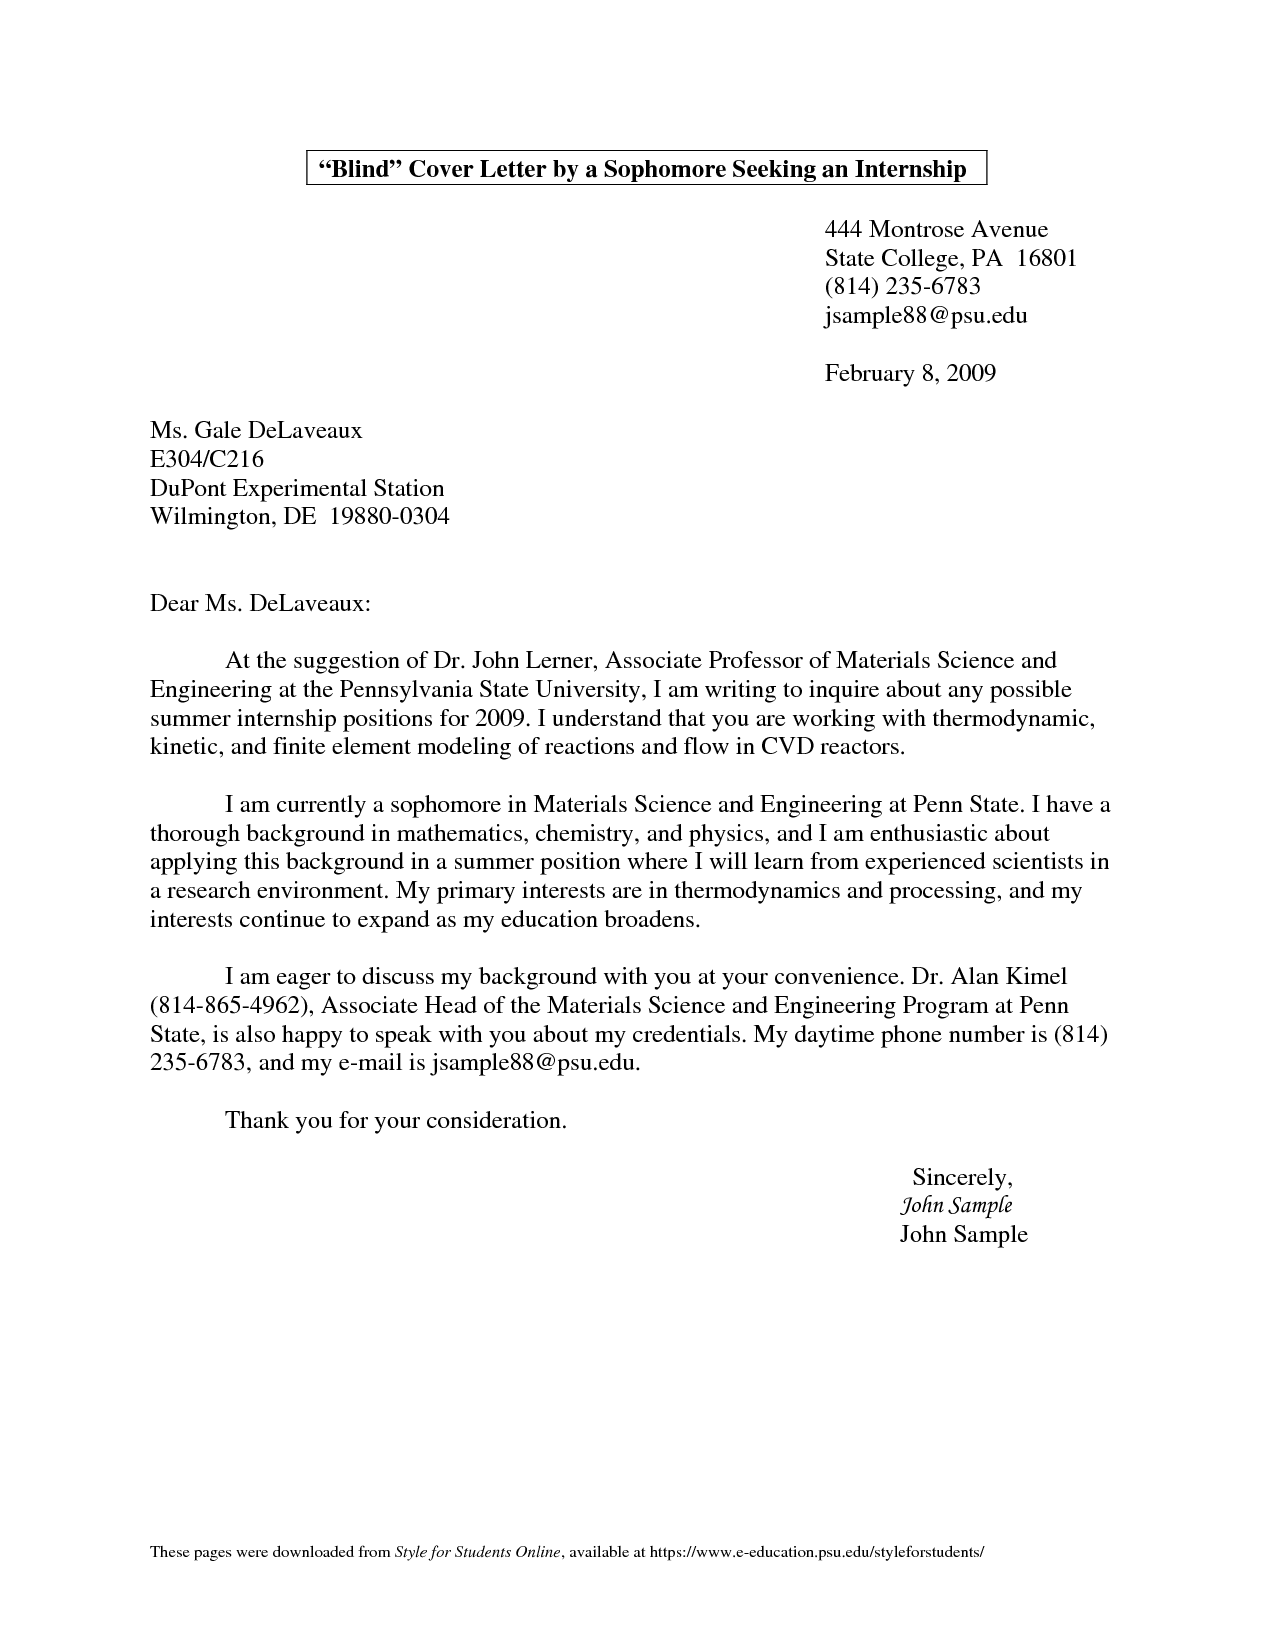 Best cover letter for engineering internship. An expert on the best ...